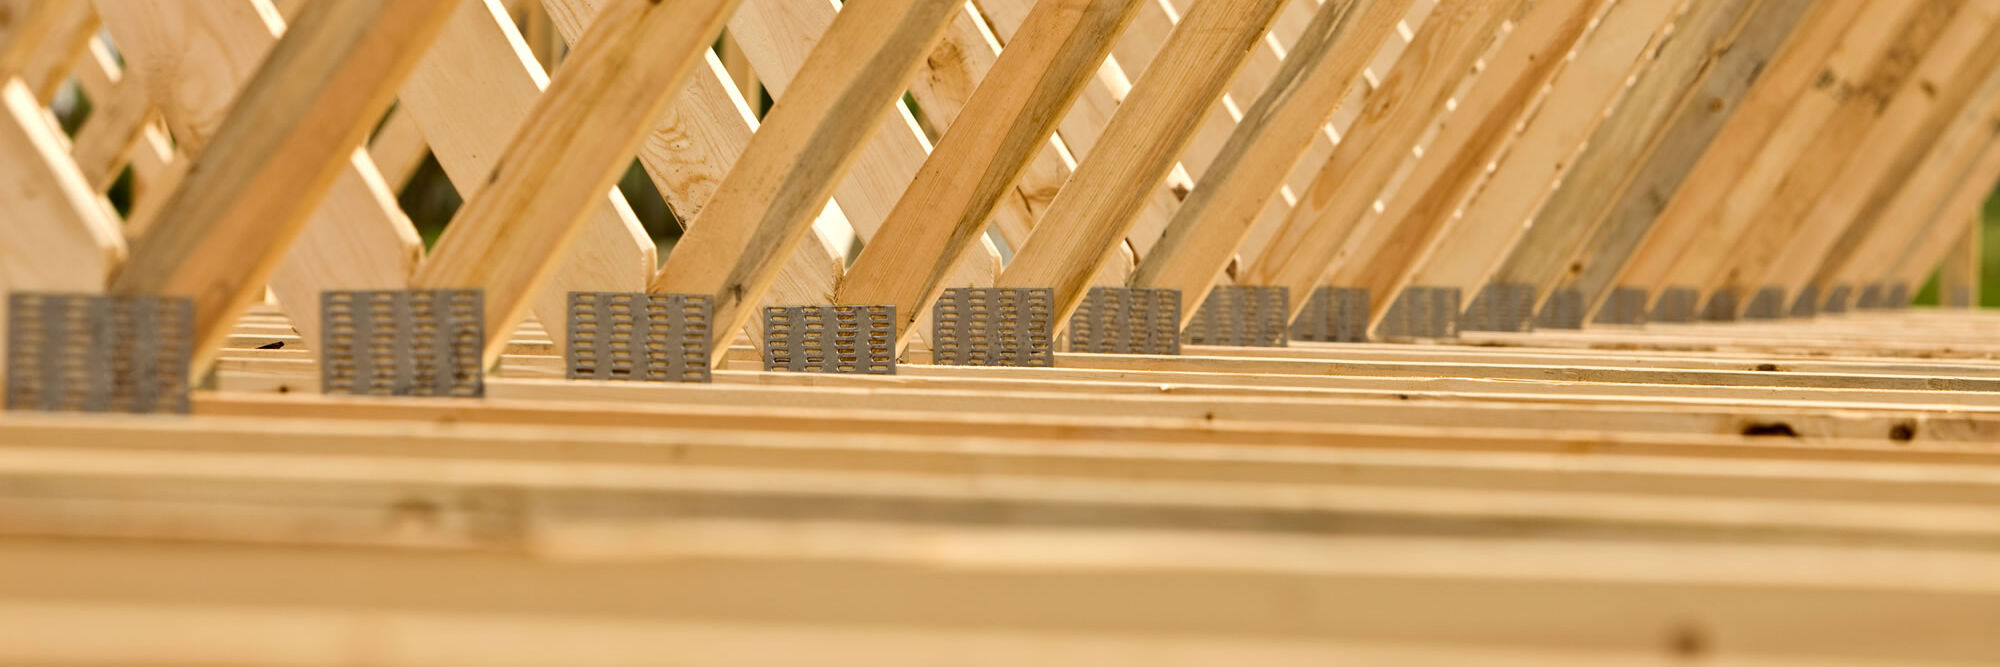 Timber Trusses